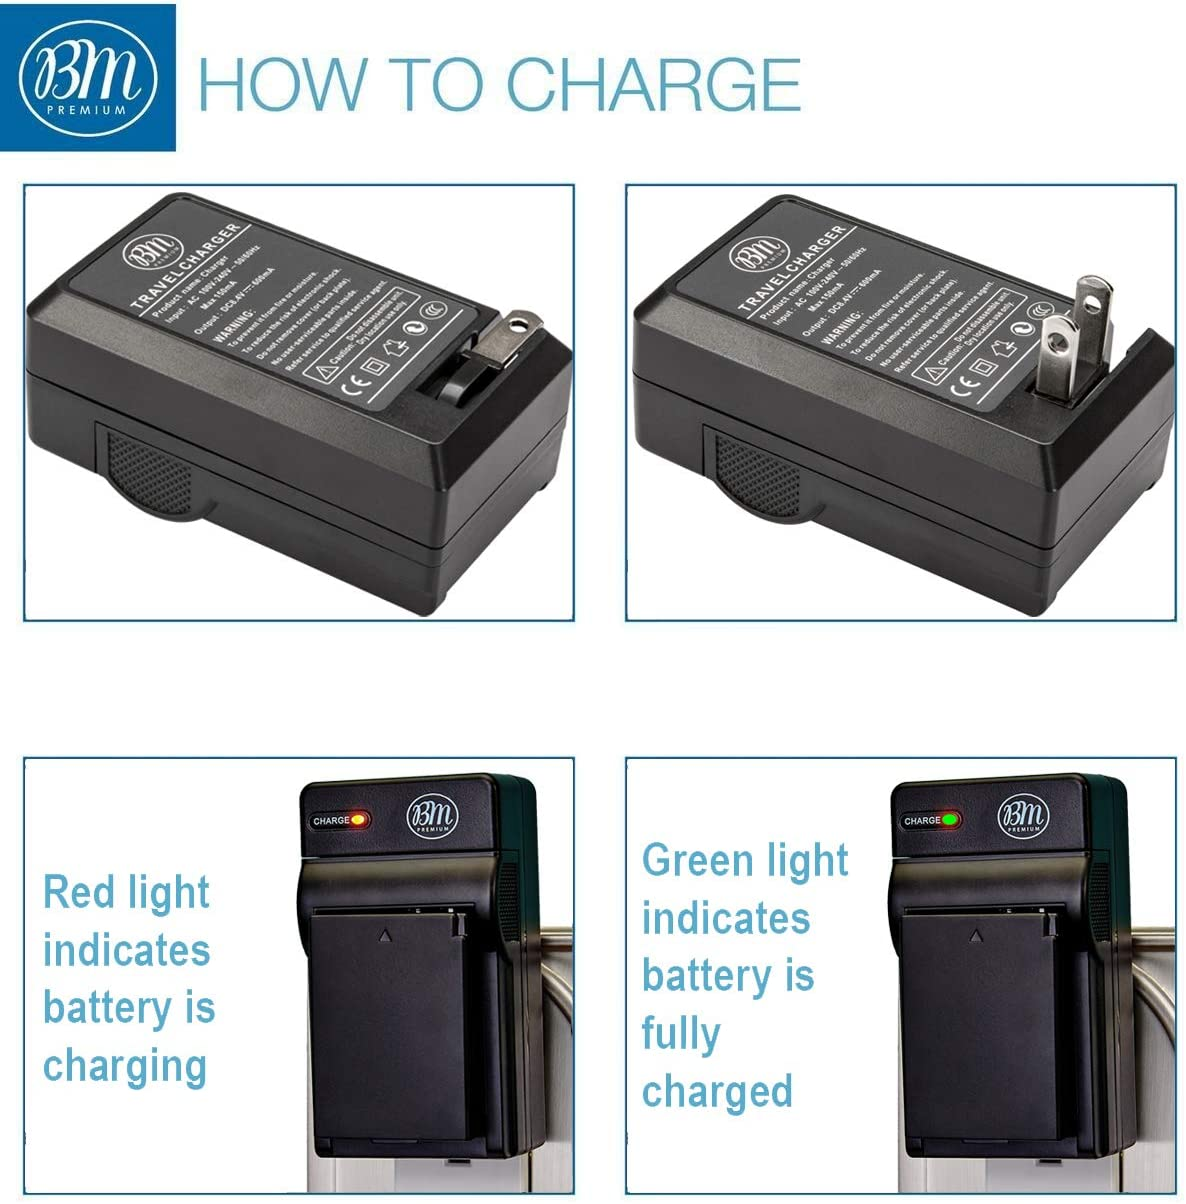 1x Charger Replacement for Sony DSLR-A700Z 1700 mAh BattPit trade; New 2x Digital Camera Battery